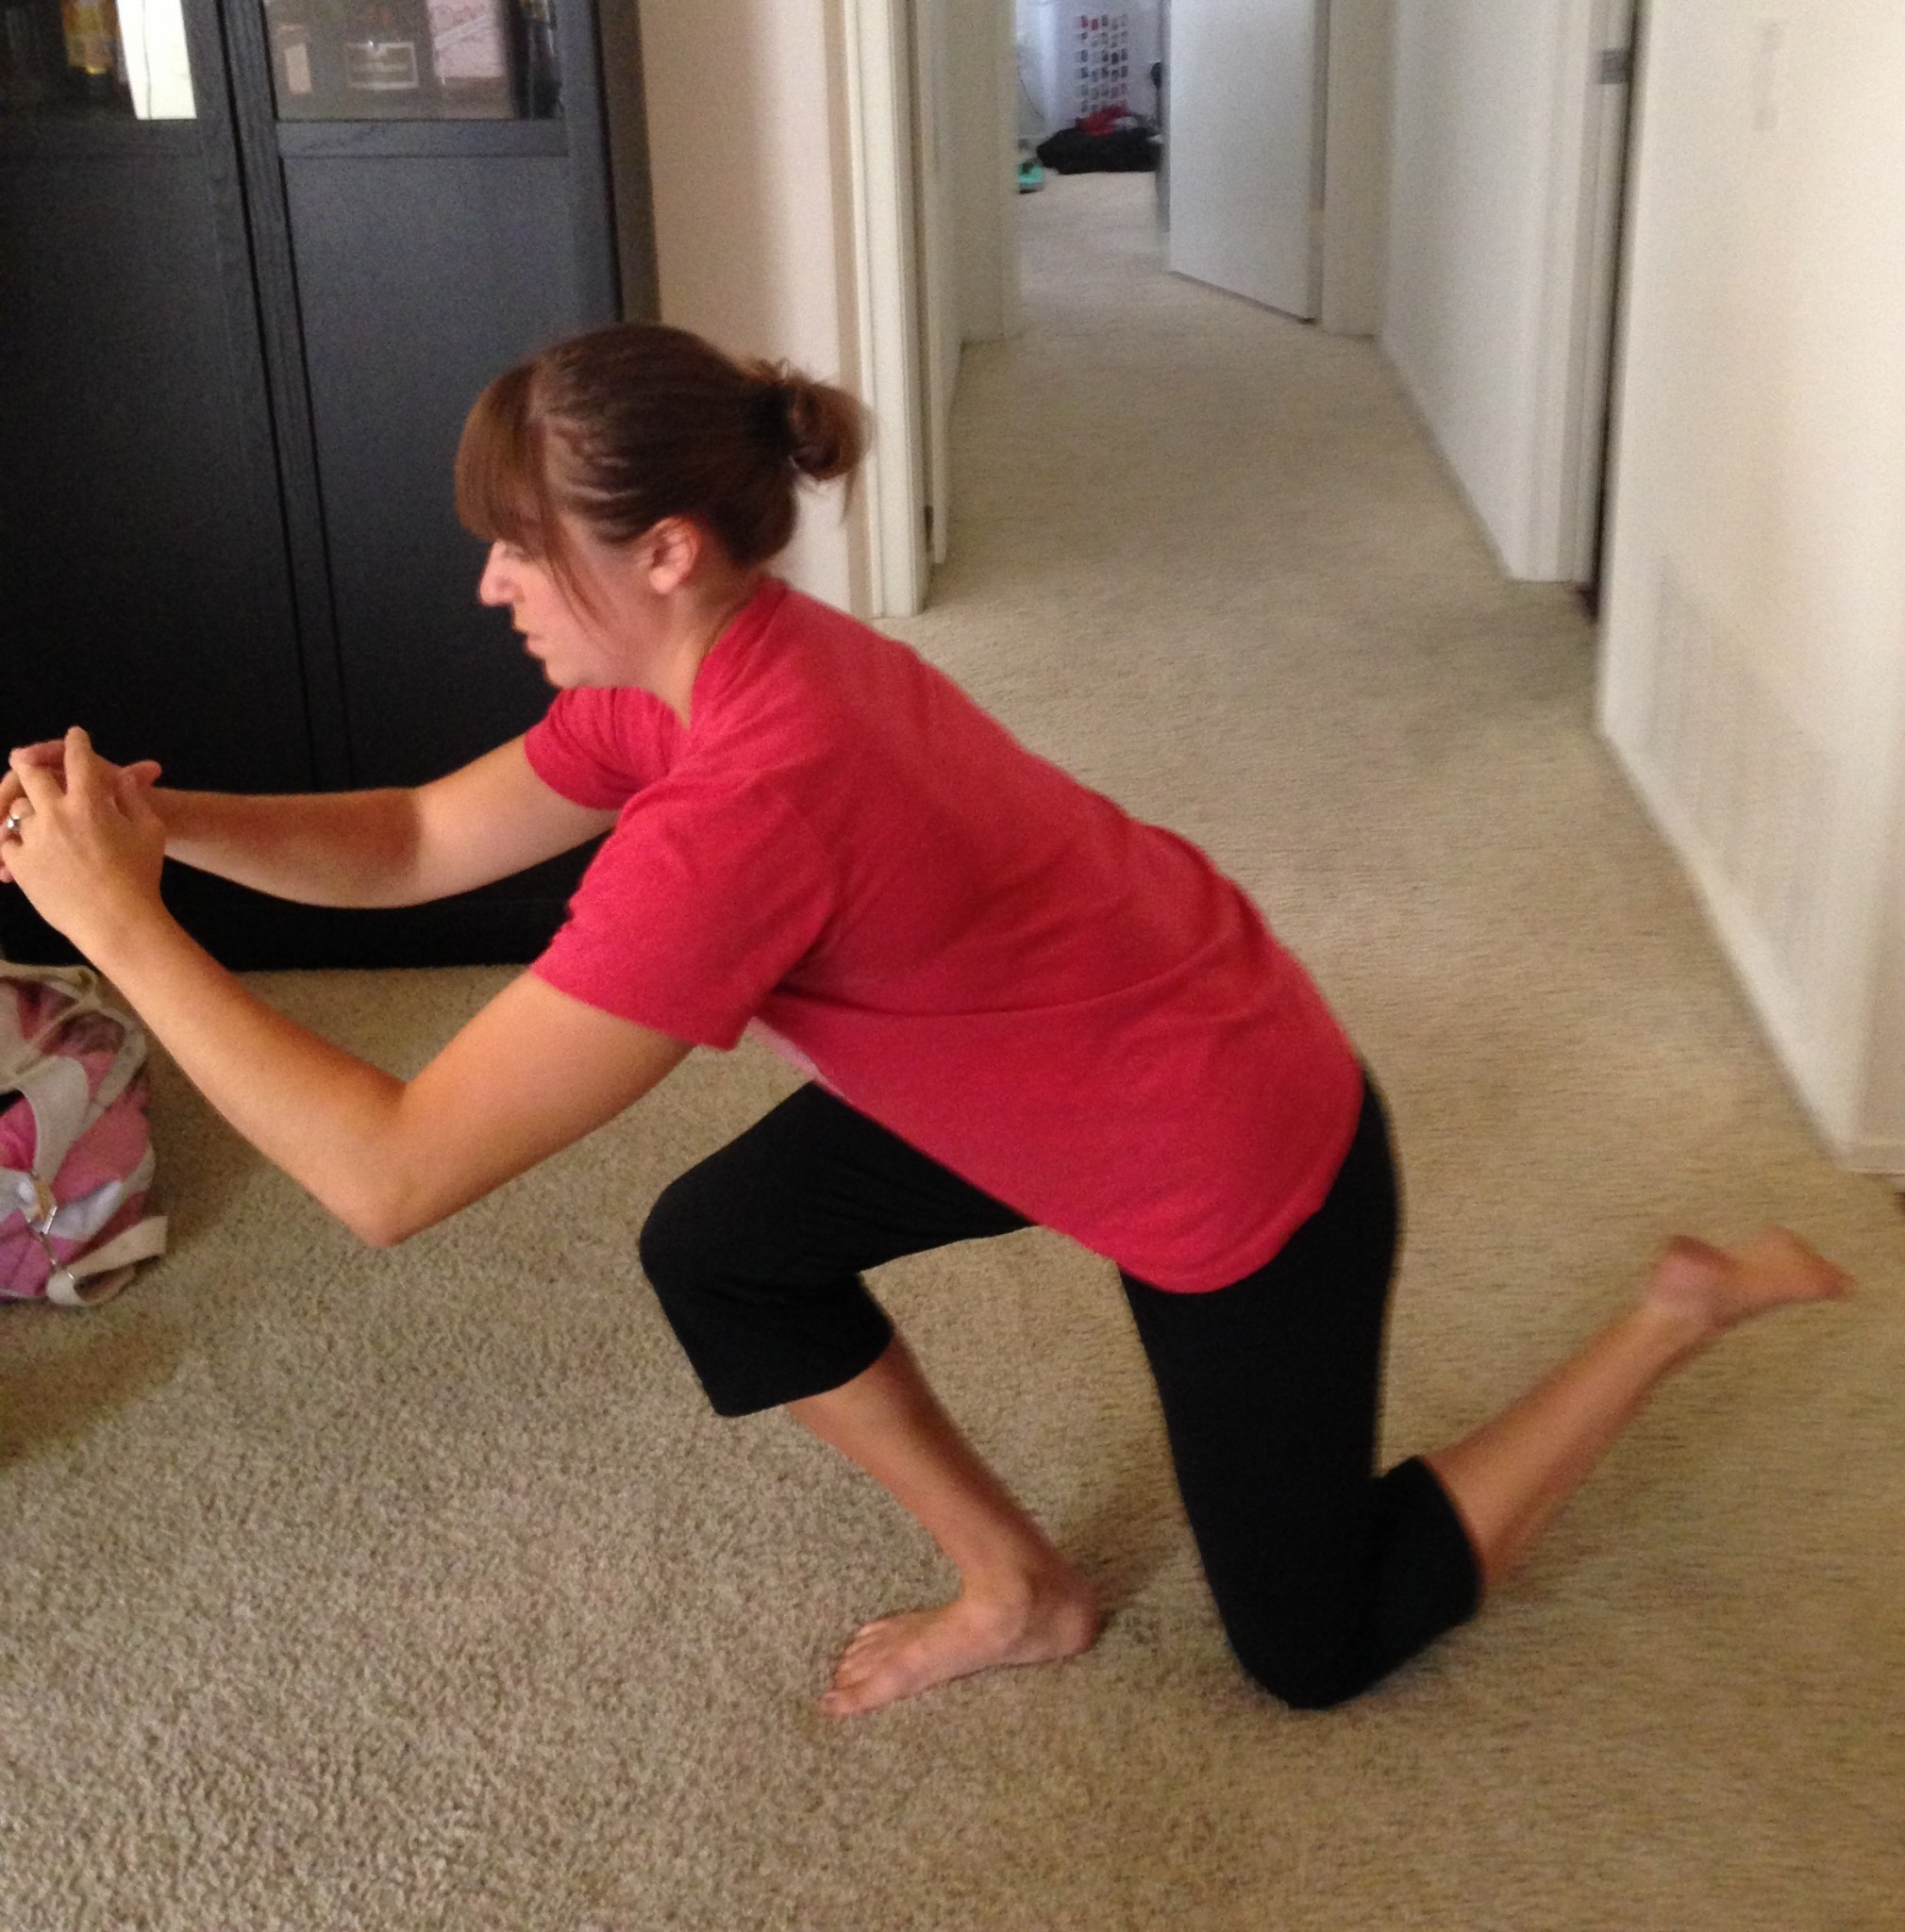 Unilateral Leg Exercises – The Airborne Lunge and Regressions